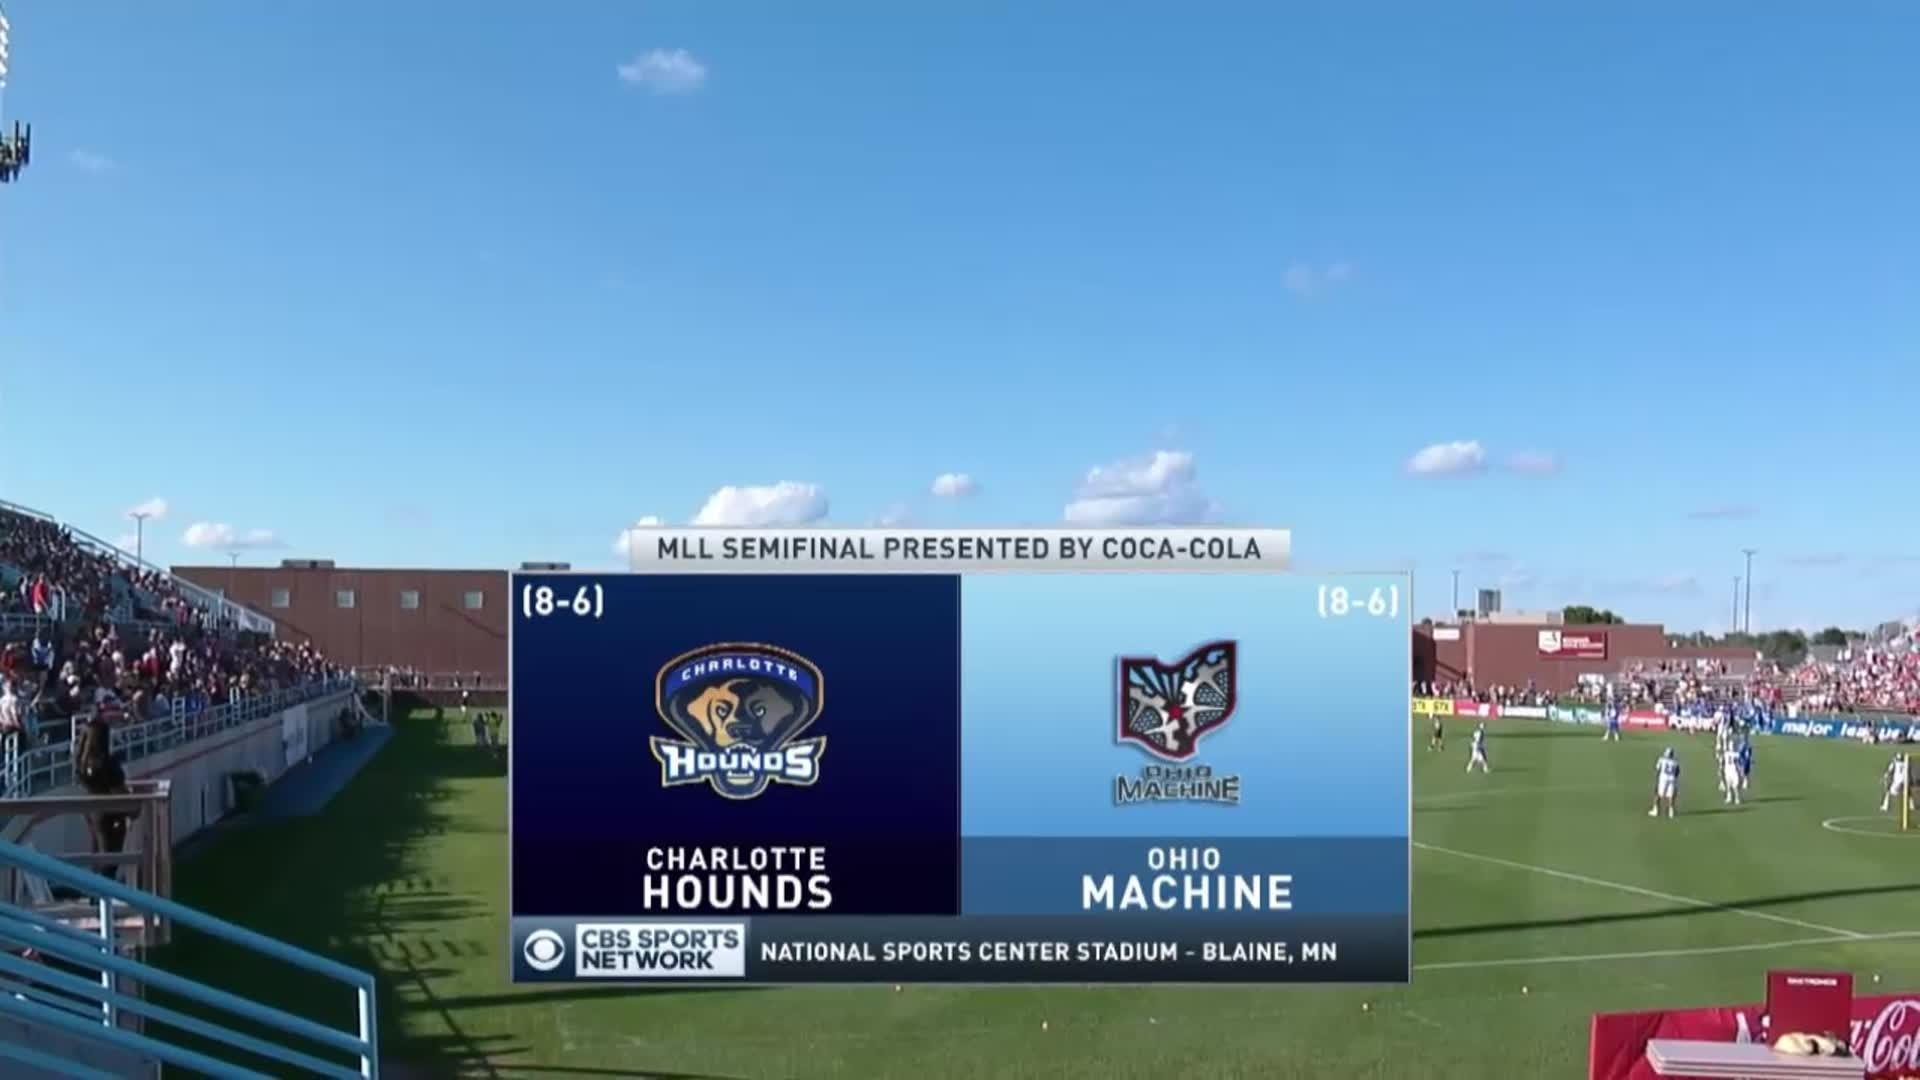 2016 MLL Semi-Final: Charlotte Hounds vs Ohio Machine